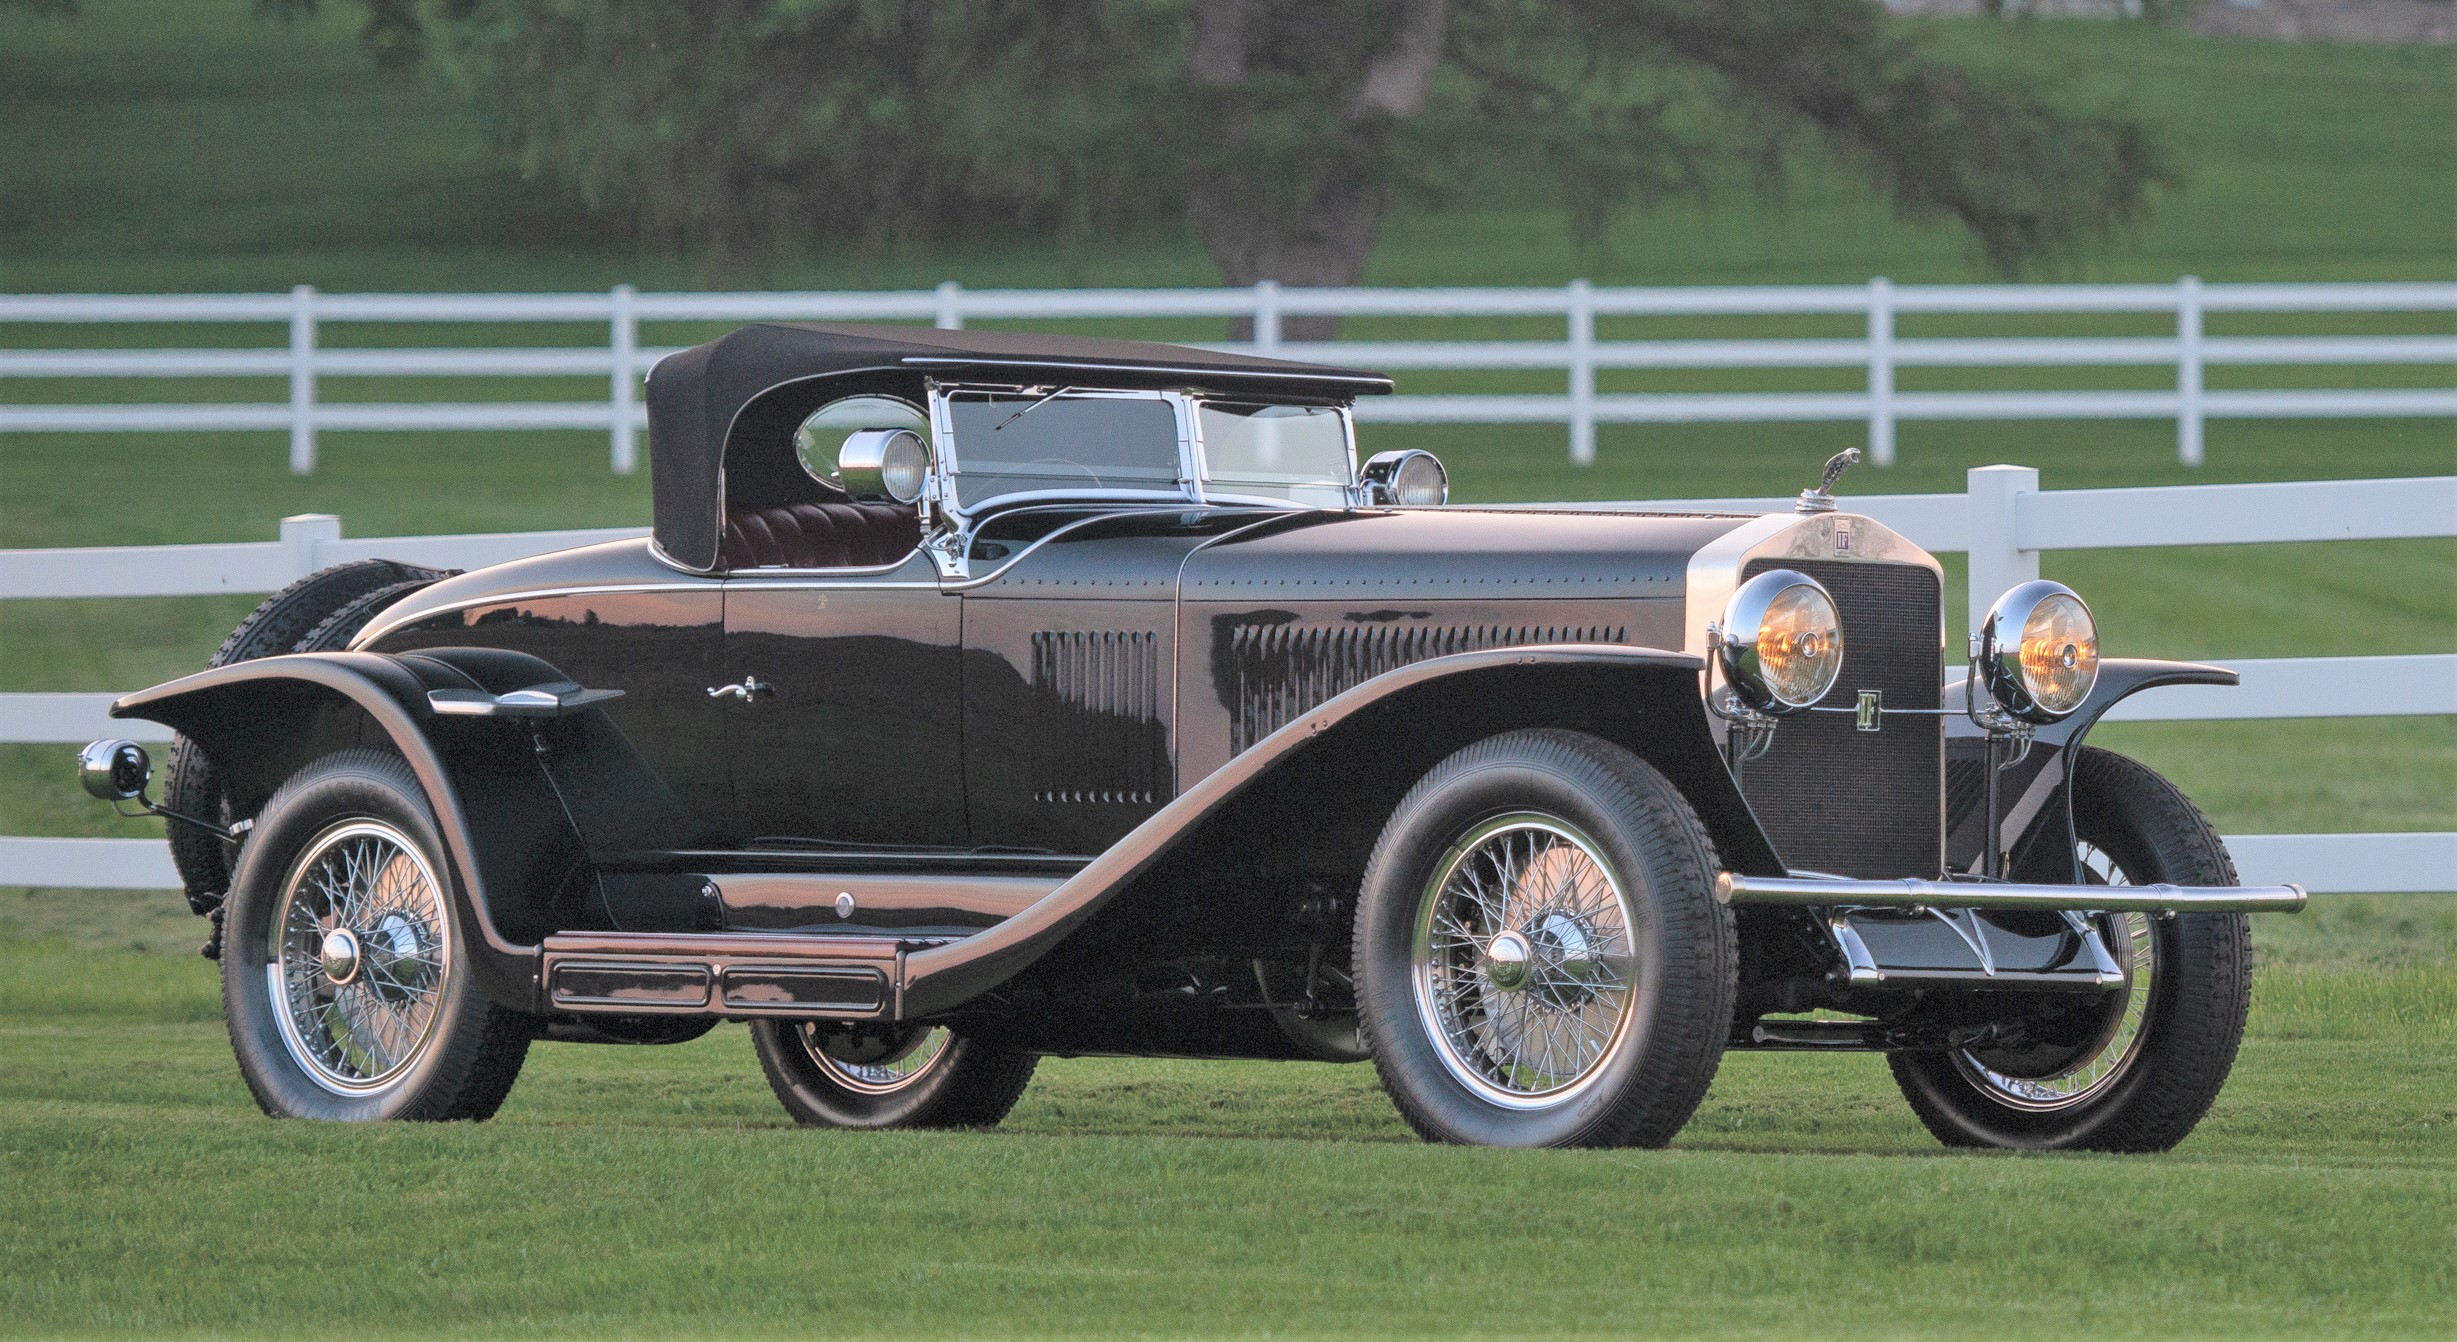 The Isotta Fraschini twice won Best of Class at the Pebble Beach Concours